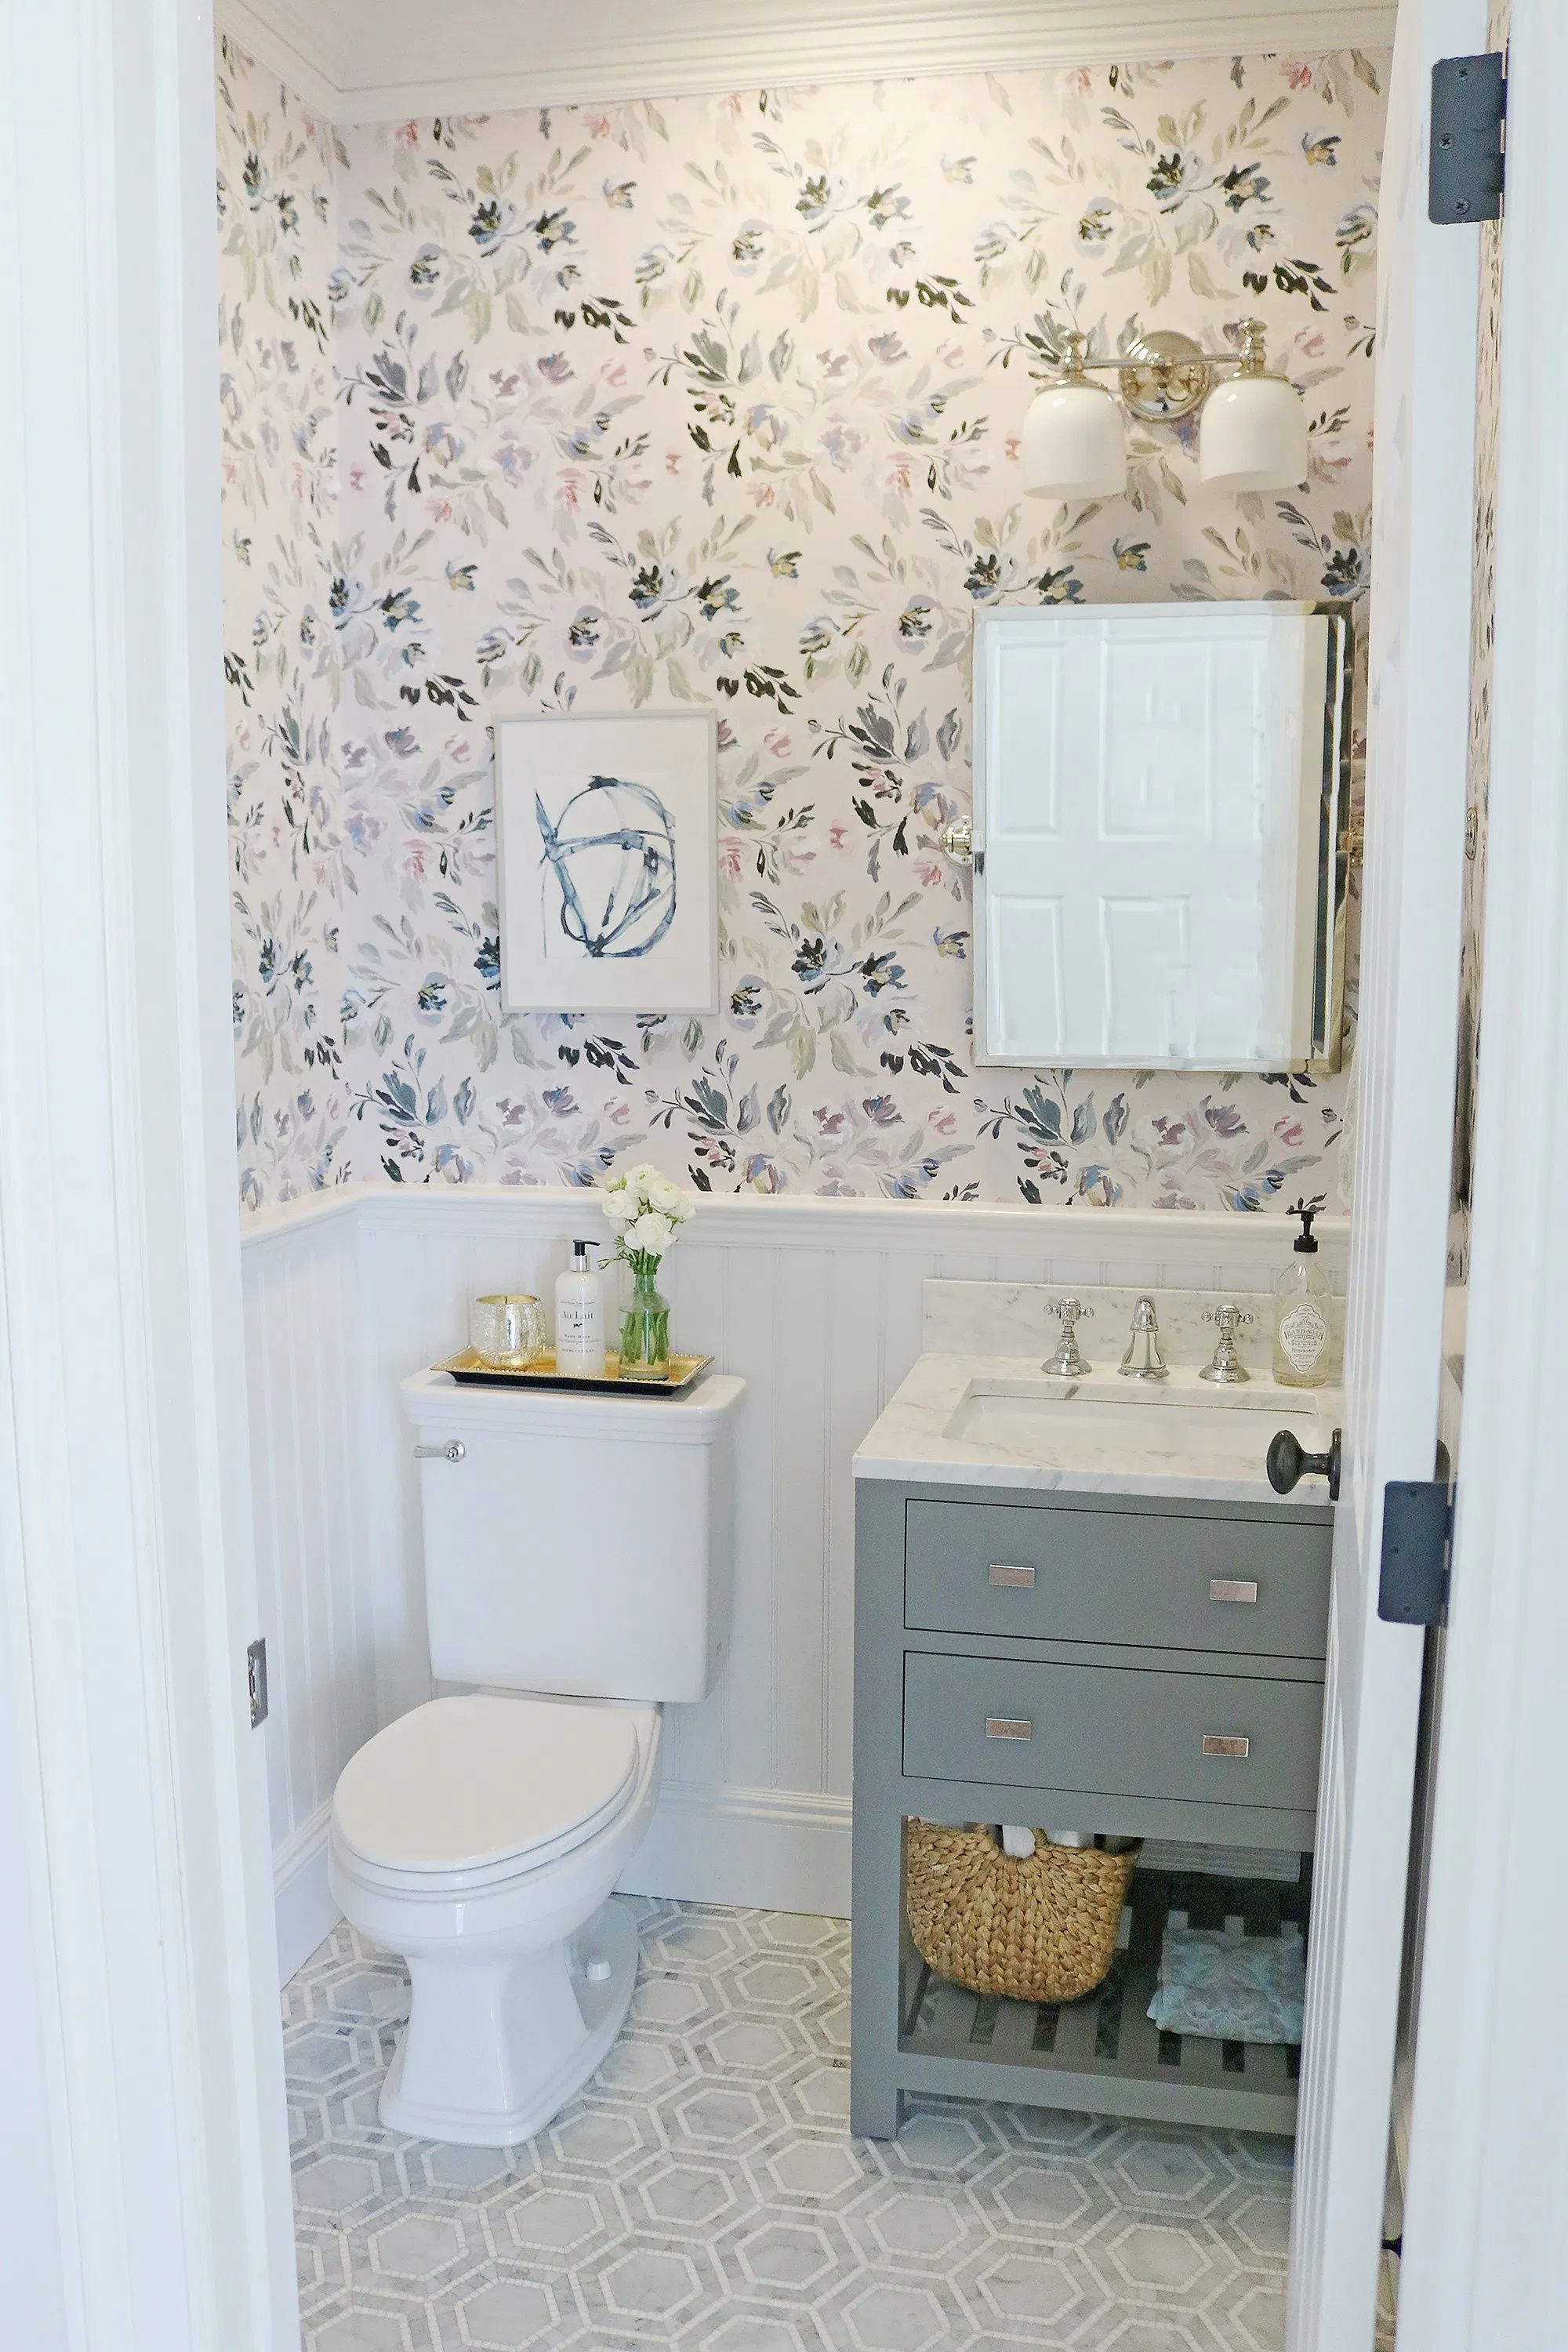 Traditional Wallpaper Vs Removable Wallpaper Darling Darleen A Lifestyle Design Blog Pottery Barn Bathroom Barn Bathroom Bathroom Makeover